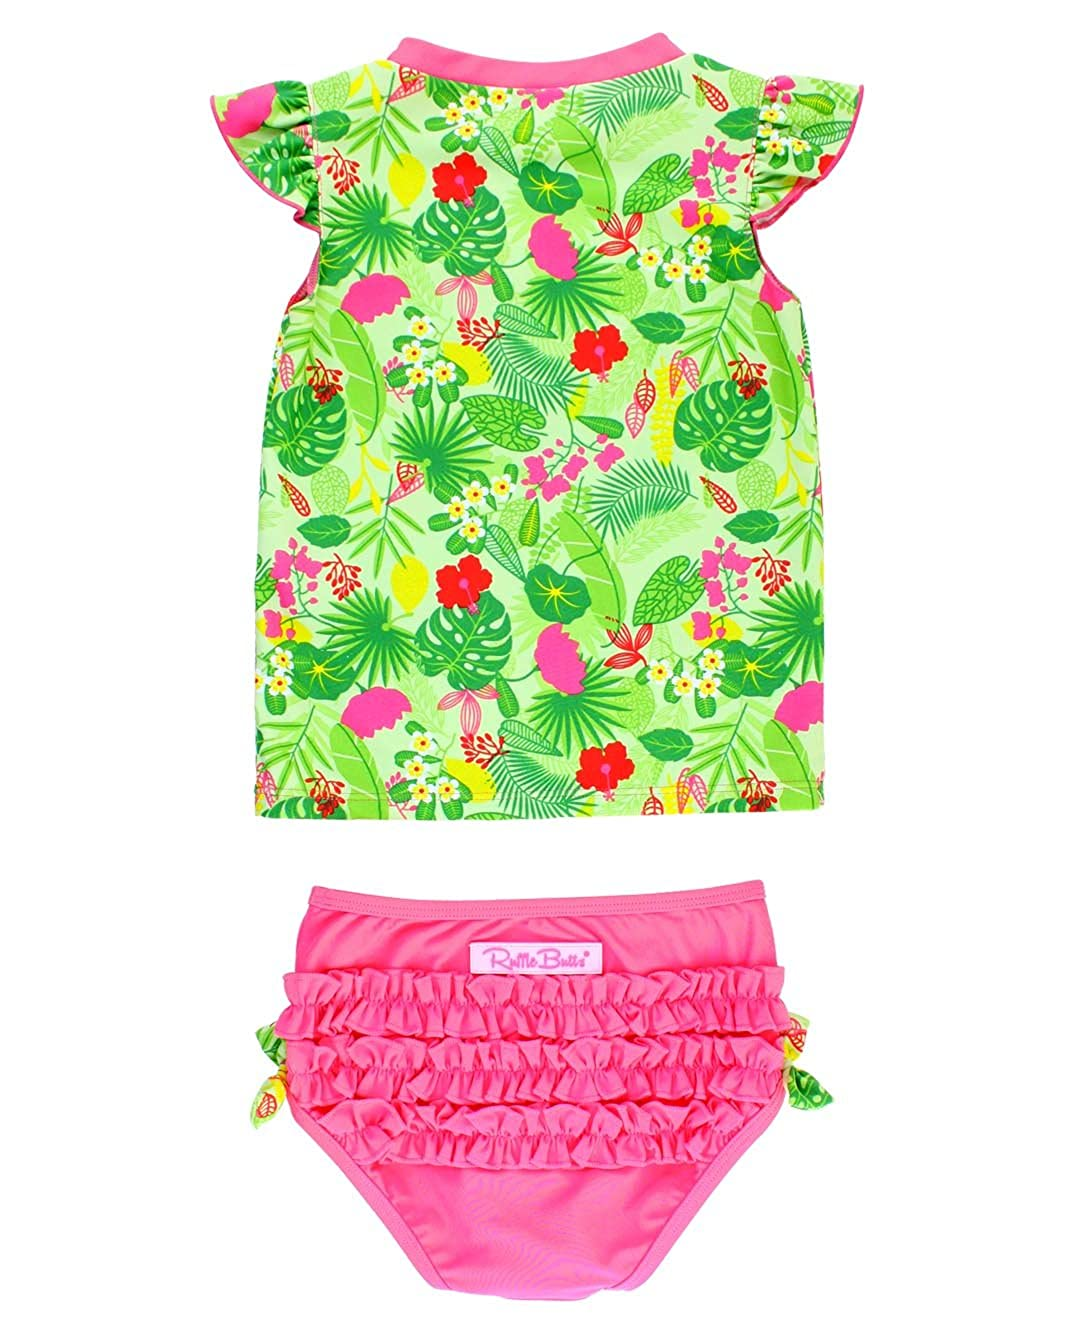 RuffleButts Baby/Toddler Girls Rash Guard 2-Piece Swimsuit Set - Tropical Print UPF 50+ Sun Protection RGSGNXX-CAPV-BABY